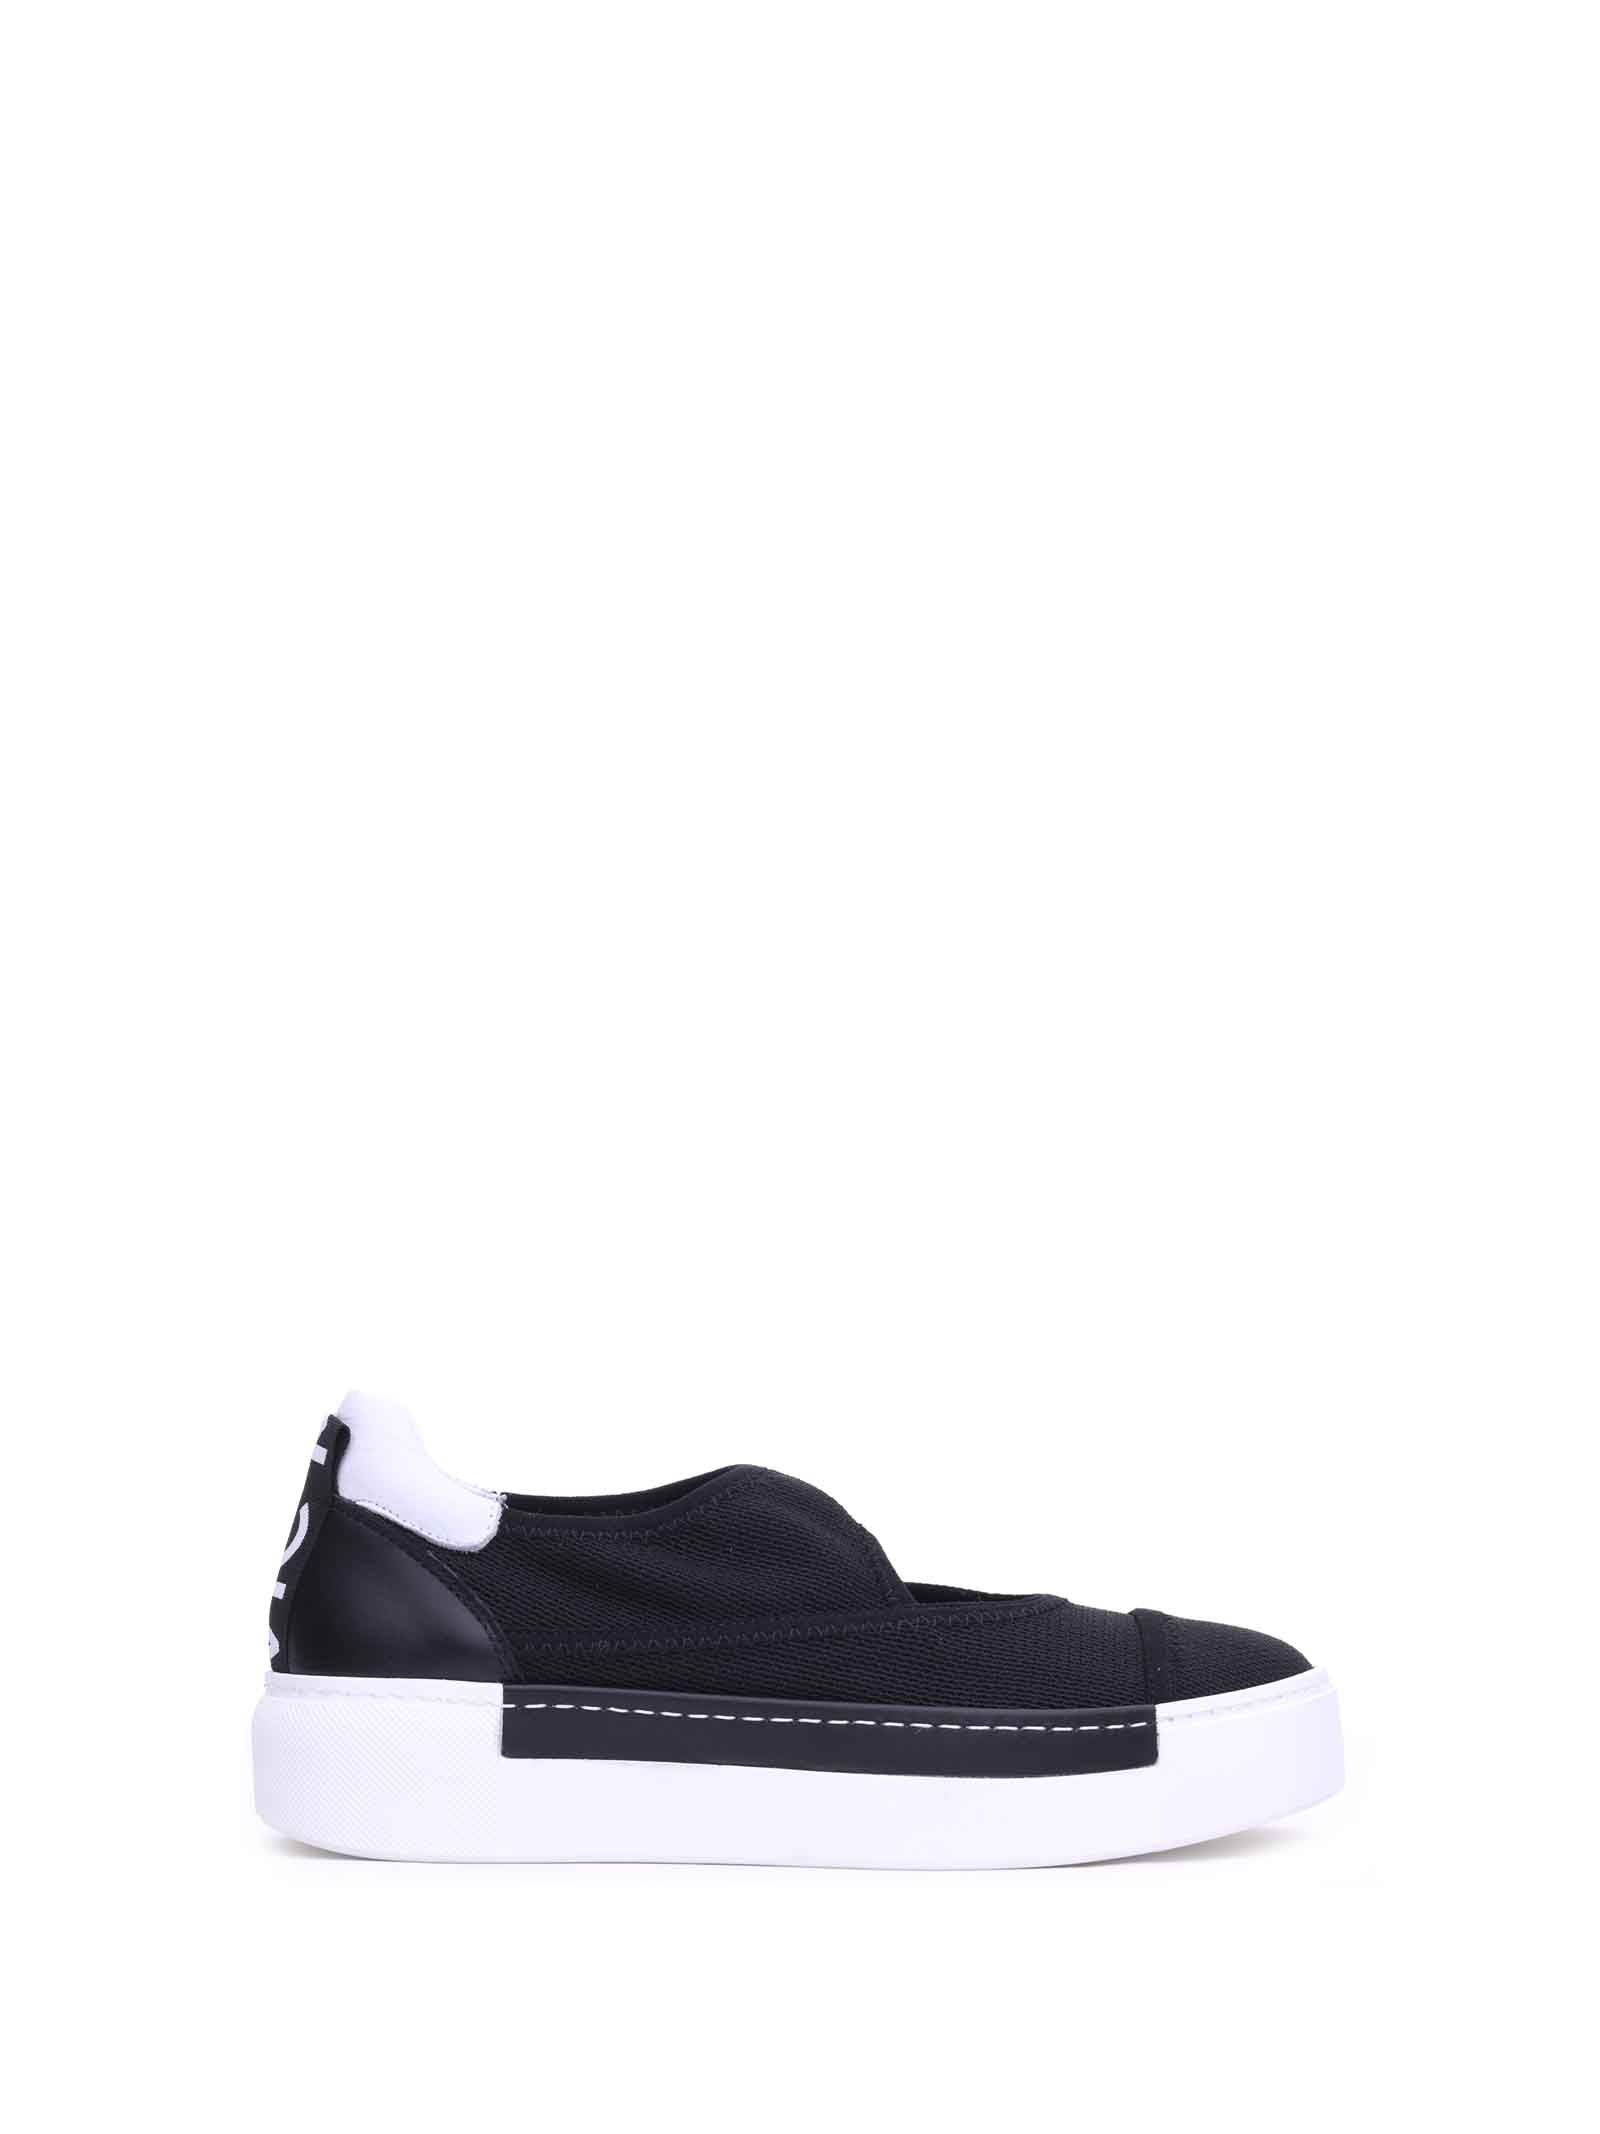 Vic Matie BLACK MESH SLIP-ONS WITH CUT OUT